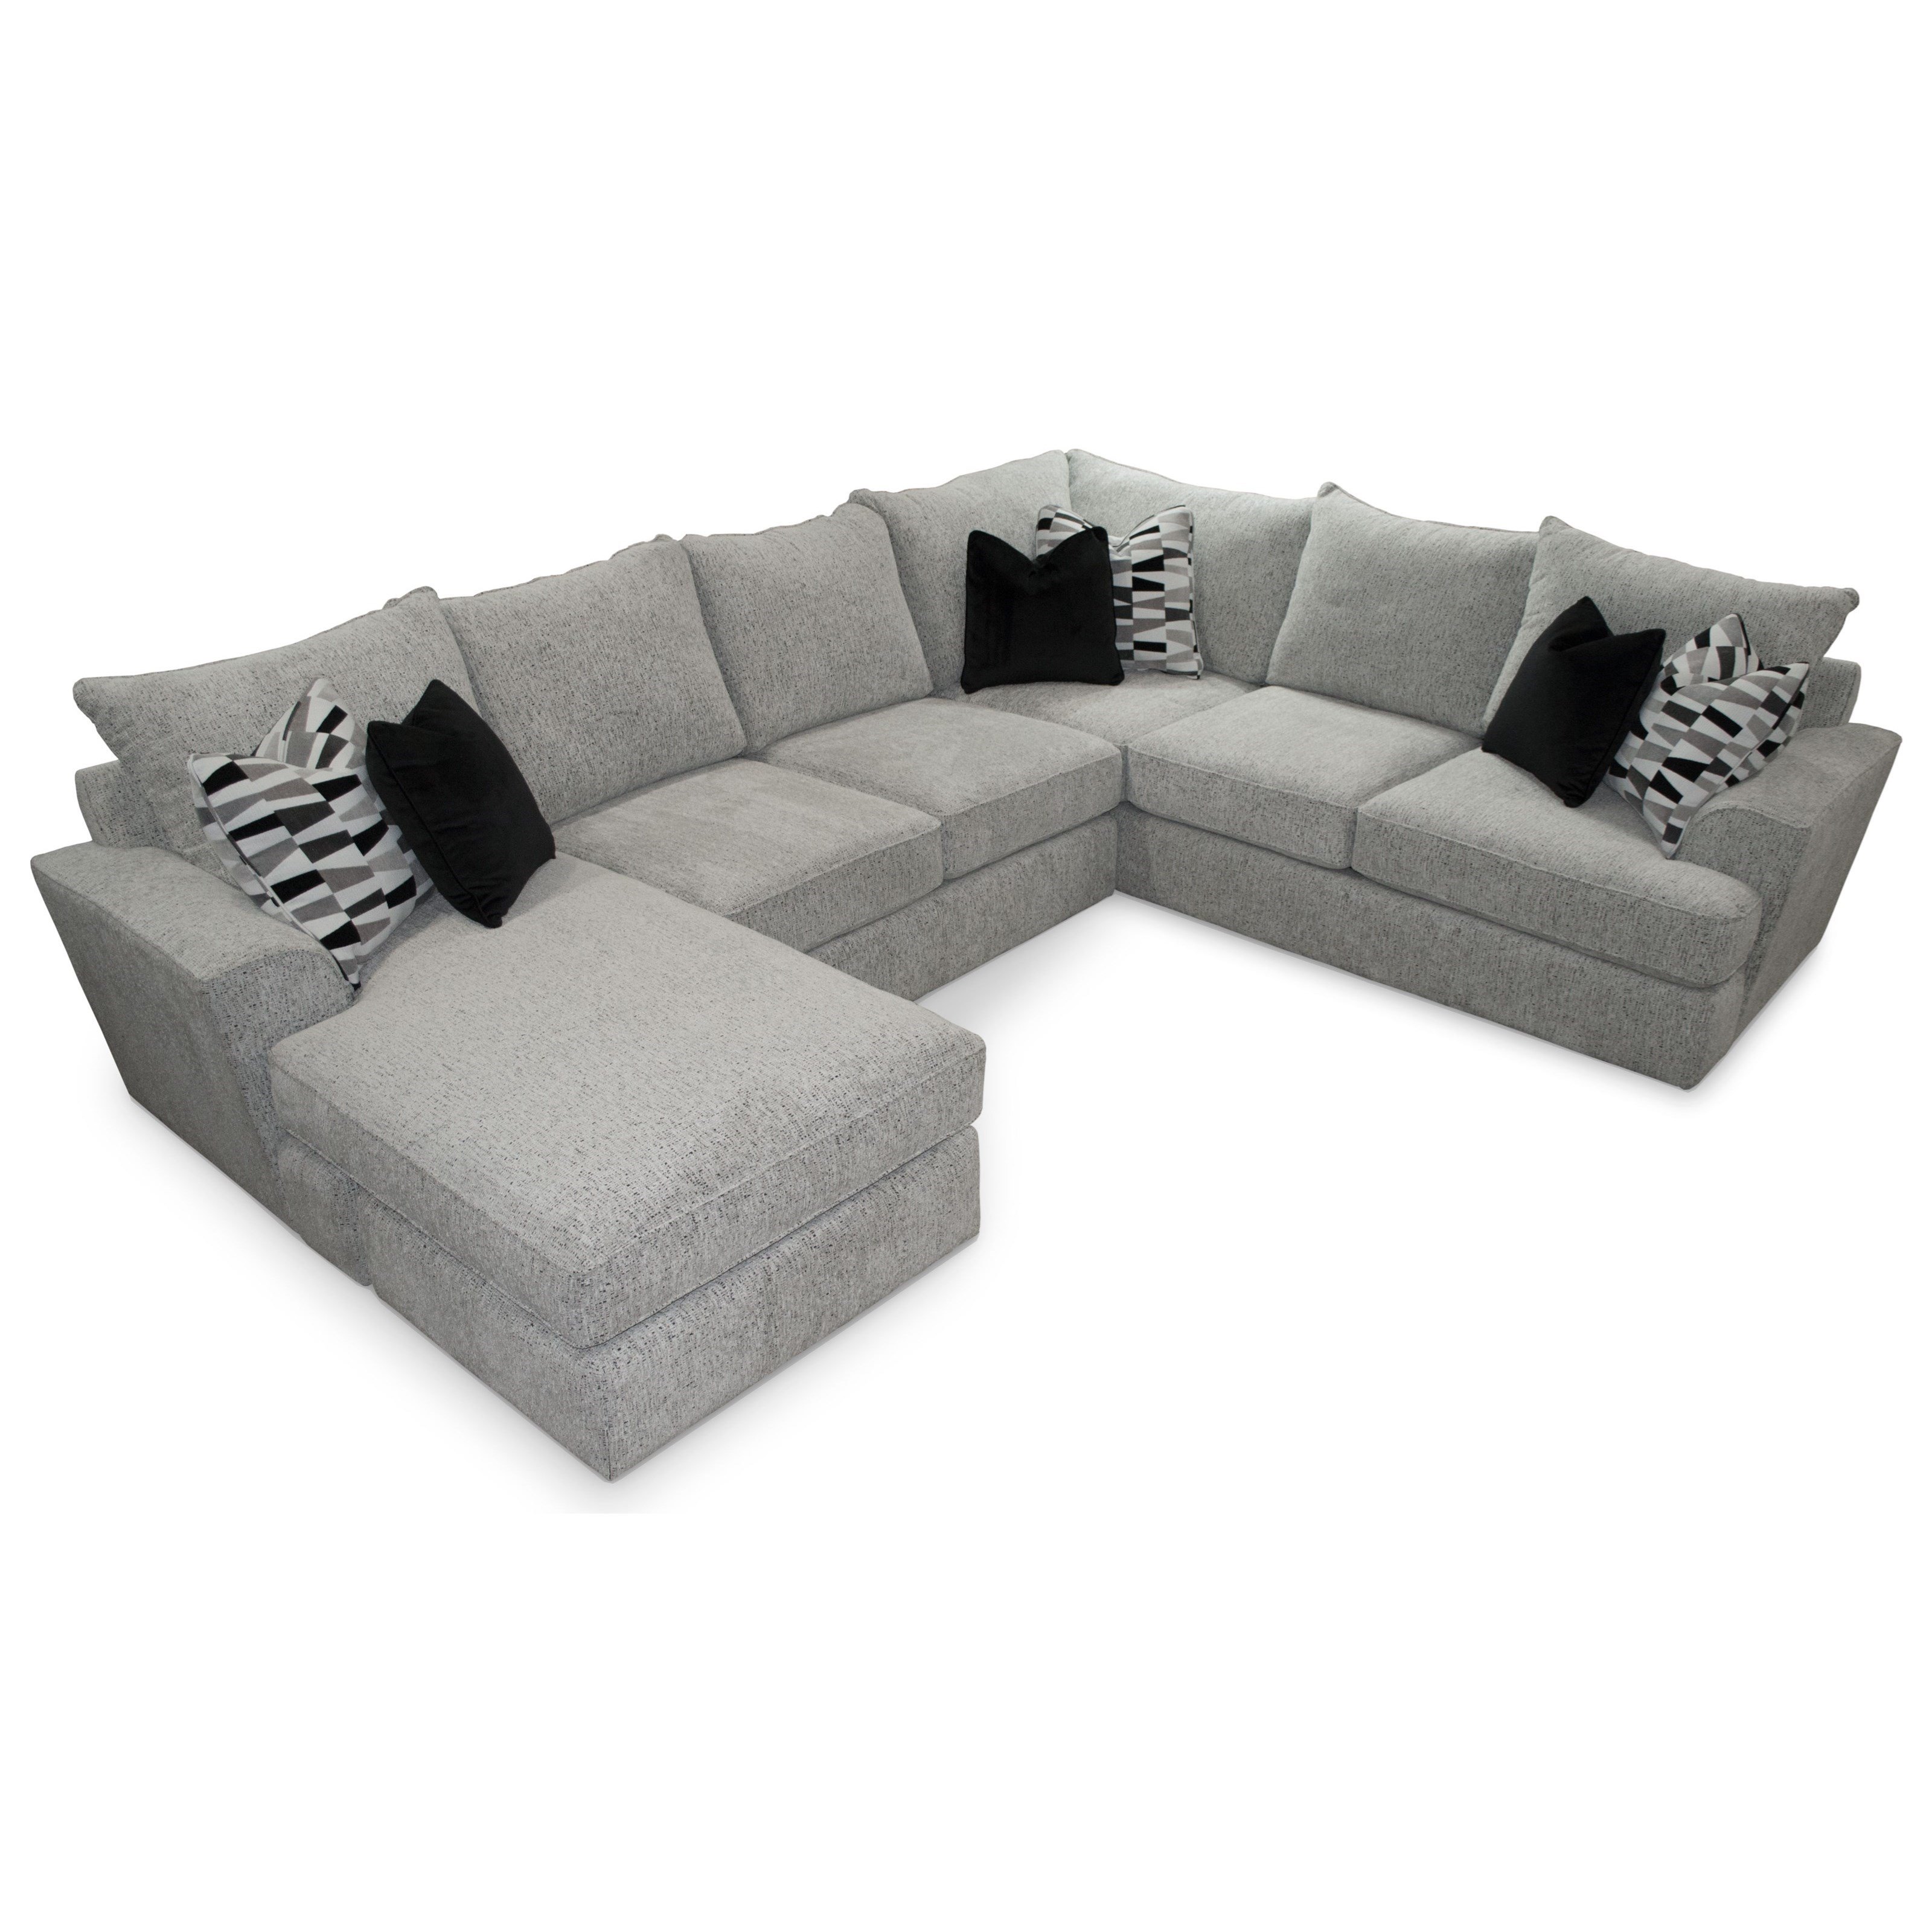 5 Seat Sectional Sofa w/ LAF Chaise